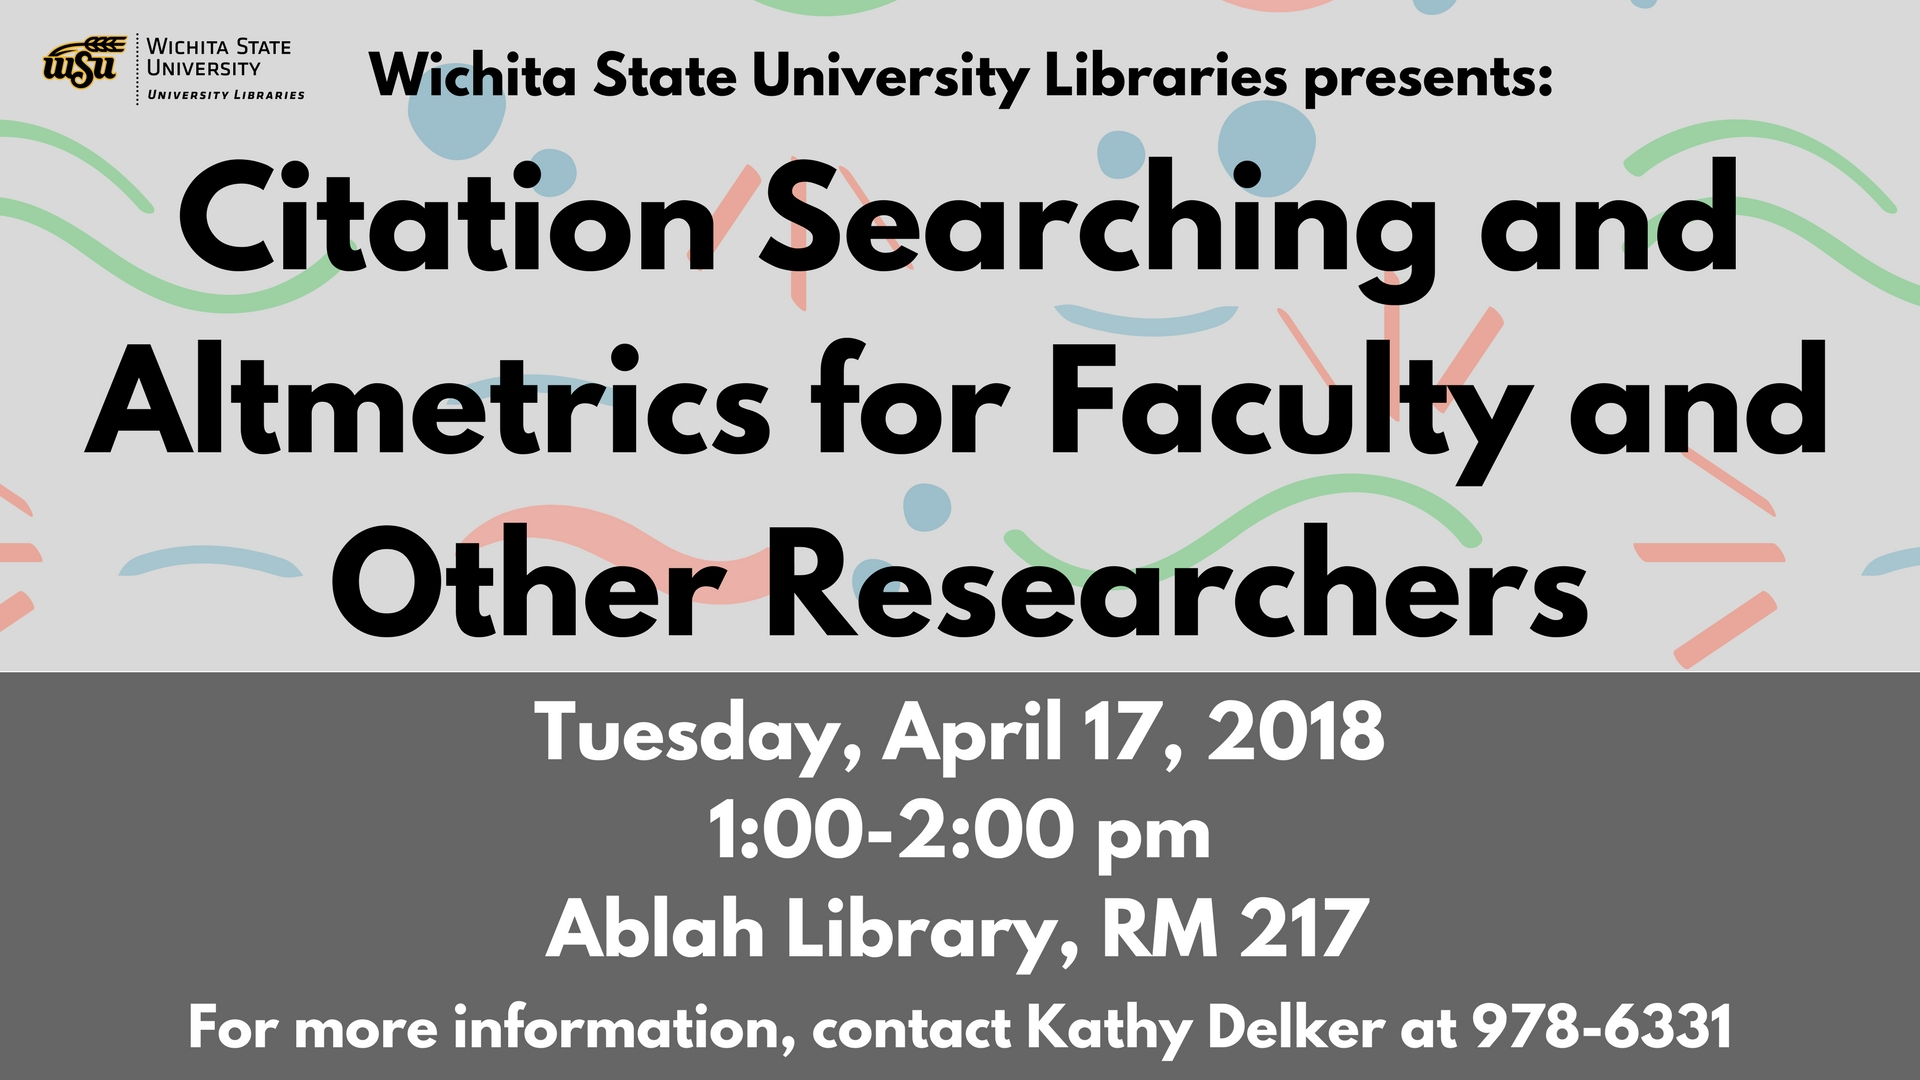 Citation Searching and Altmetrics for Faculty and Other Researchers